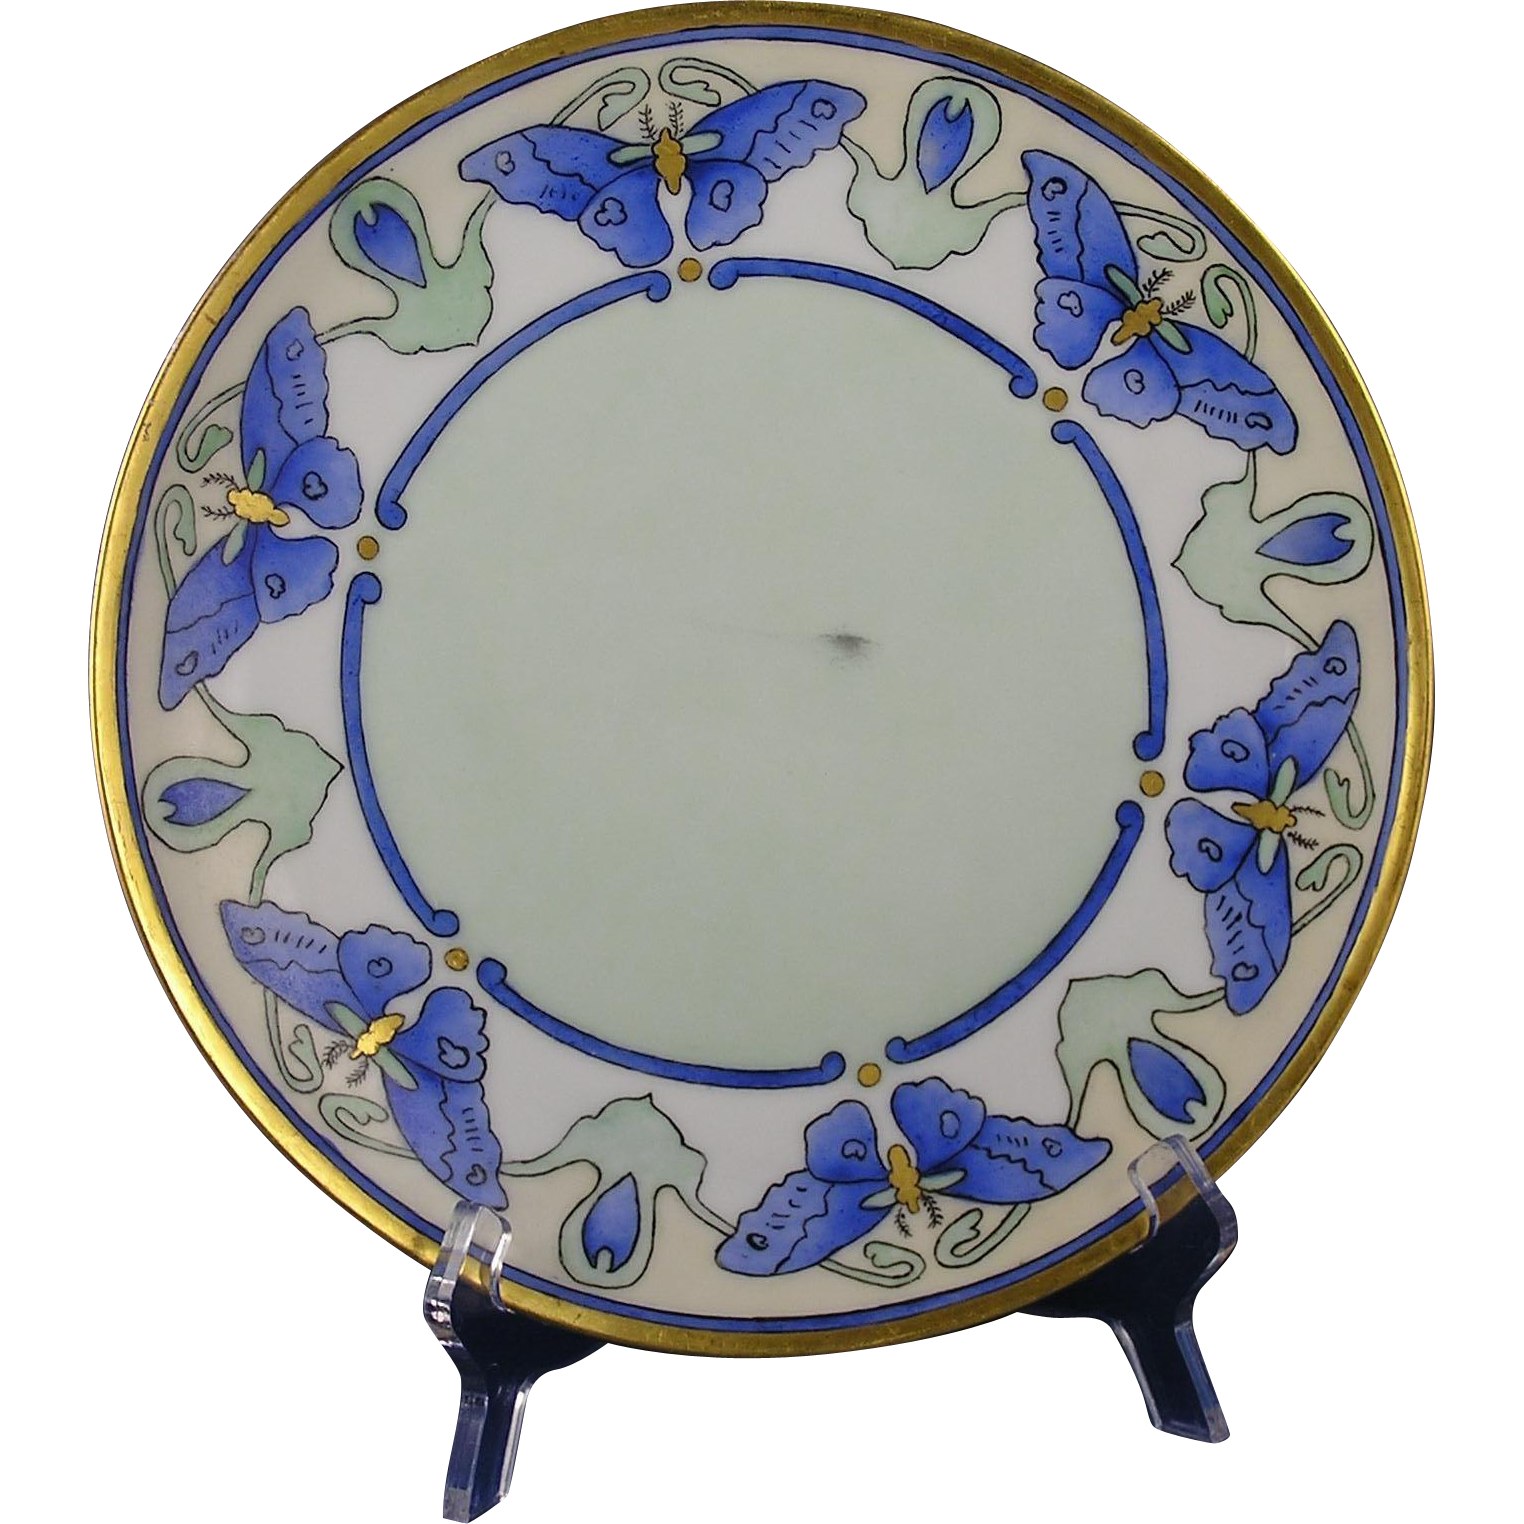 Thomas Bavaria Arts & Crafts Blue Butterfly Motif Plate (c.1908-1930) - Keramic Studio Design